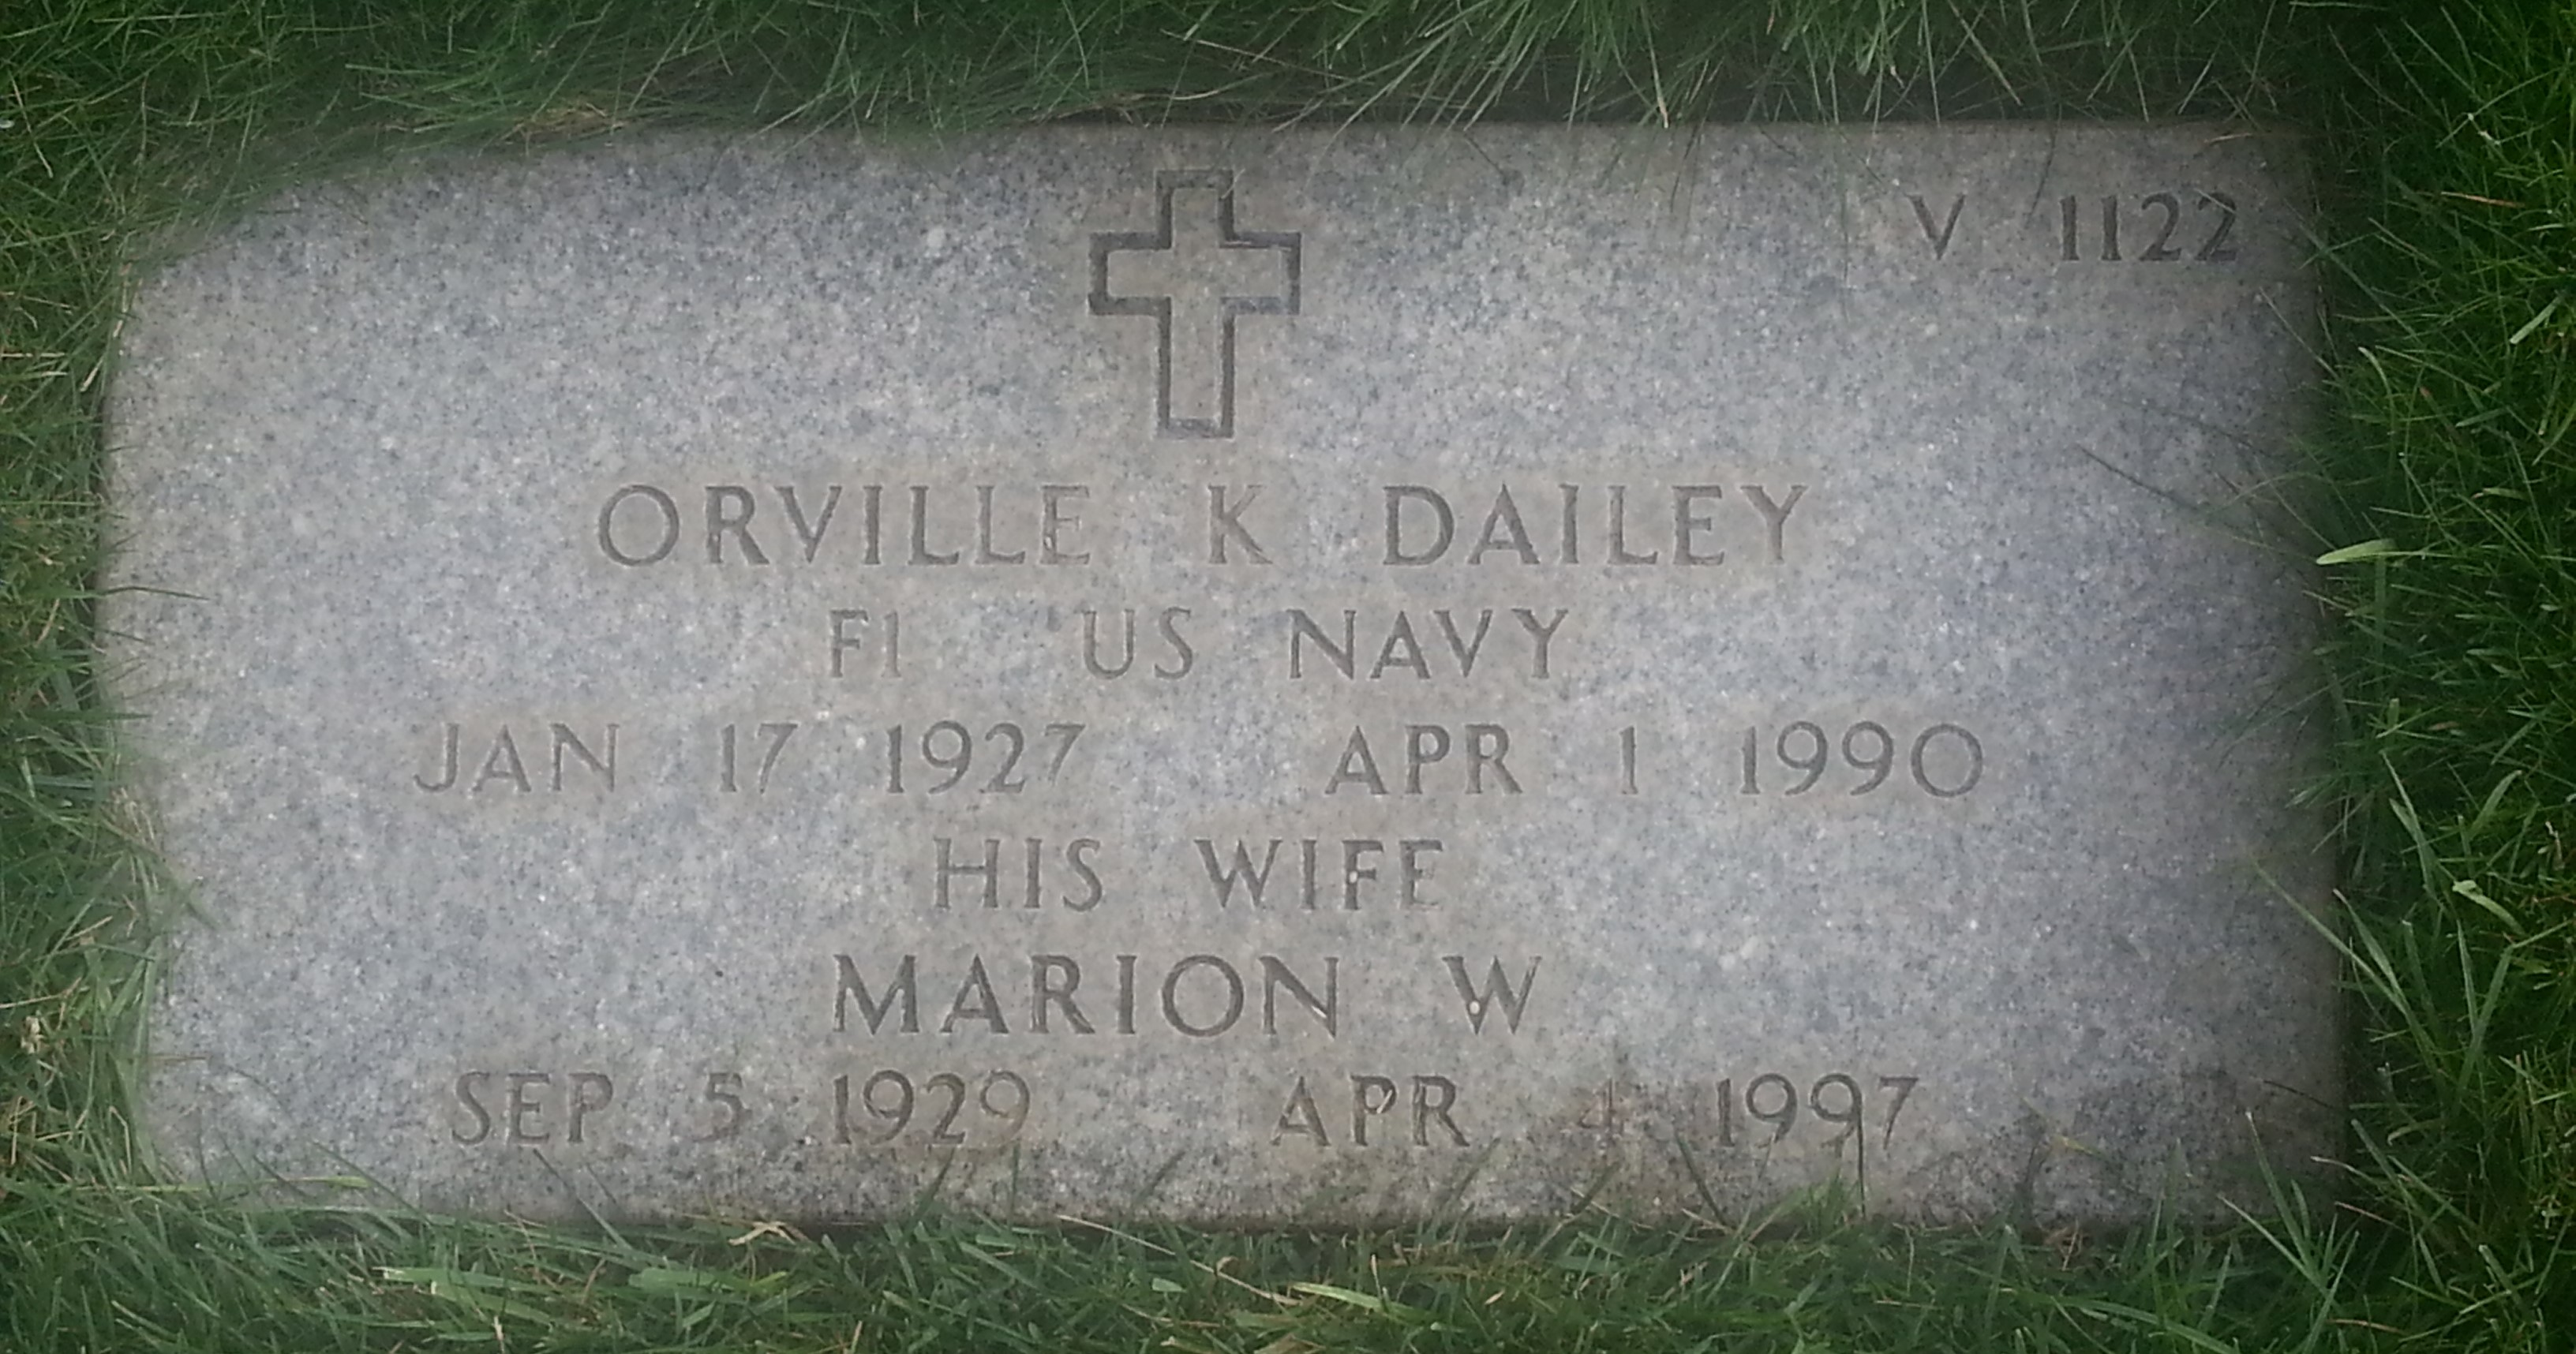 Orville Keith Dailey